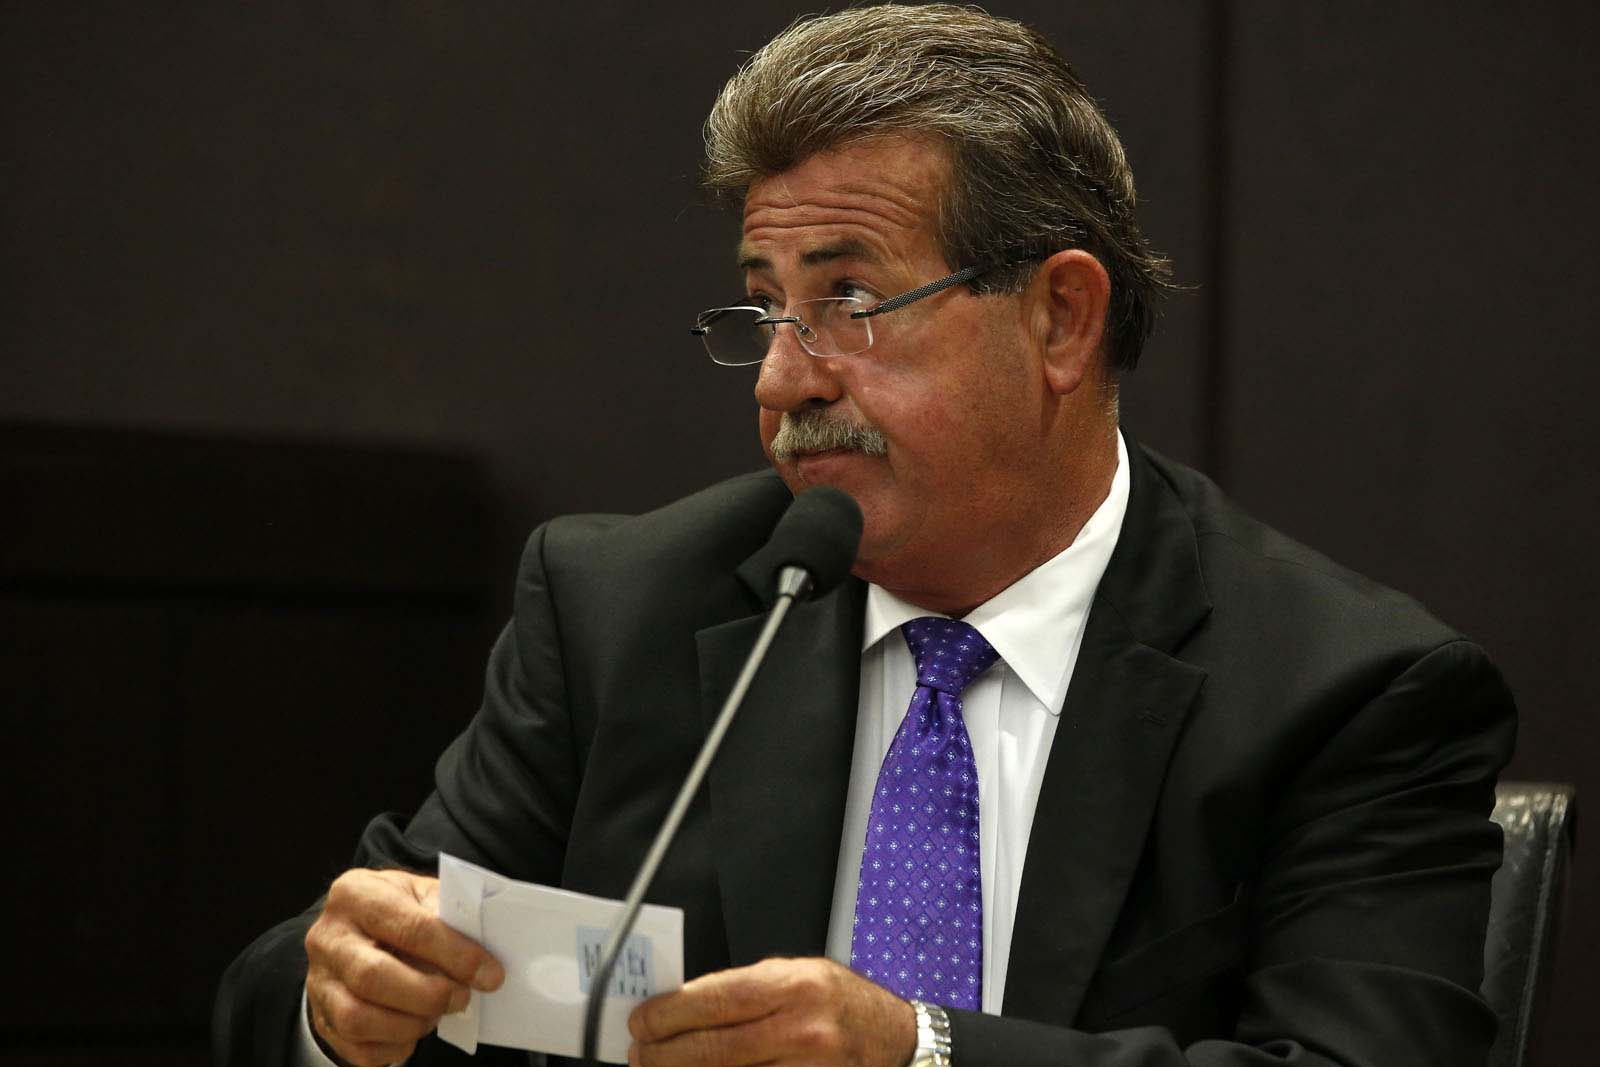 Gainesville Police Det. Randy Roberts testifies during Pedro Bravo's murder trial in courtroom 1B of the Alachua County Criminal Justice Center Monday, August 11, 2014.  Bravo is accused of killing University of Florida student Christian Aguilar.  (Doug Finger/The Gainesville Sun/Pool)